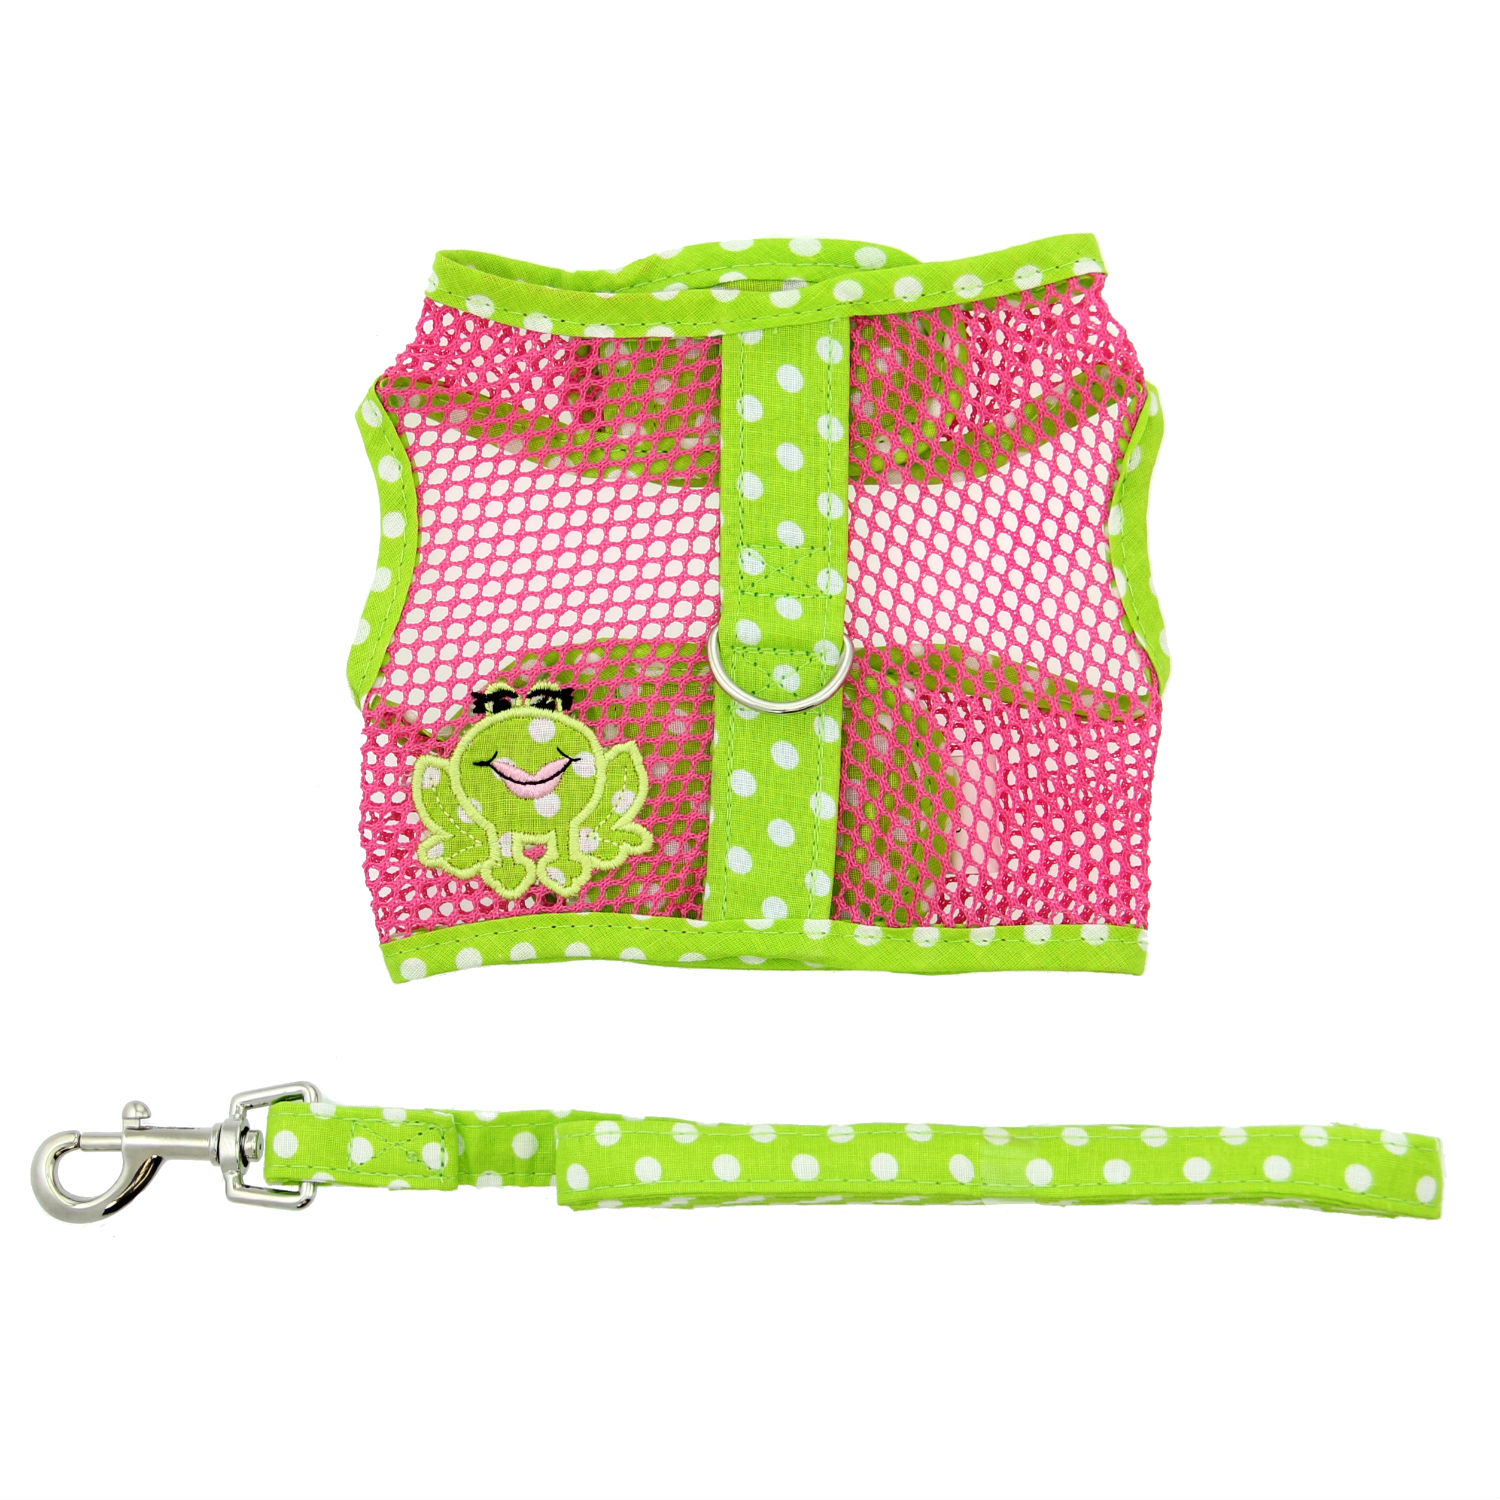 Doggie Design Cool Mesh Dog Harness with Matching Leash, Under the Sea Frog, Large